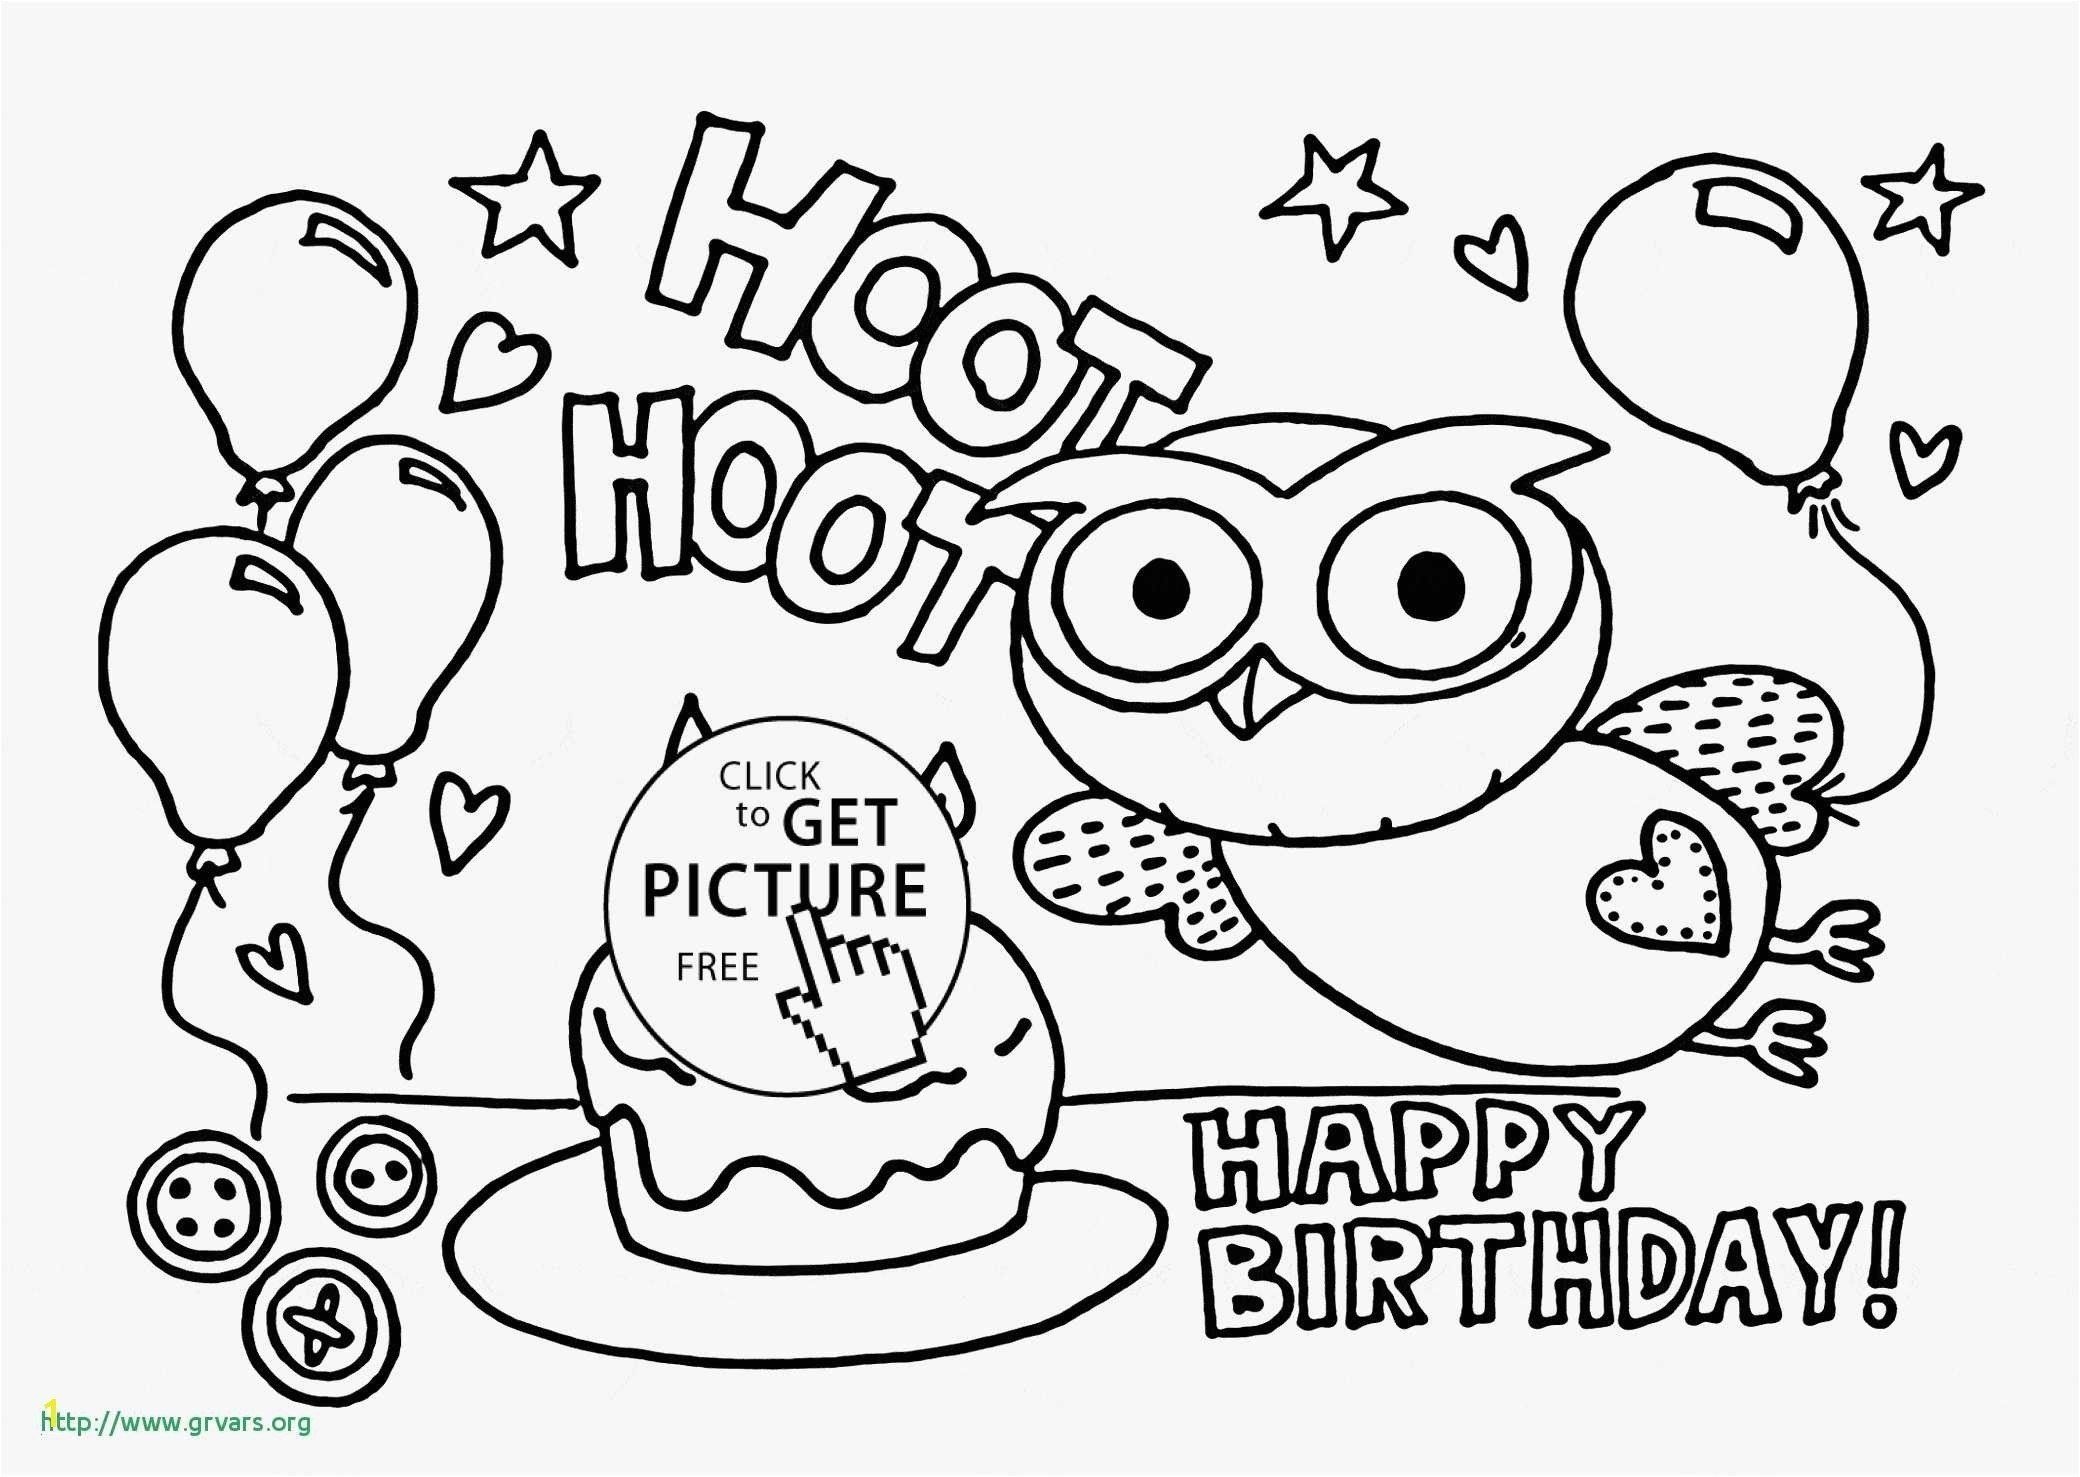 Happy Birthday Coloring Card Luxury Fresh Happy Birthday Cards Coloring Pages Z Happy Birthday Coloring Pages Birthday Coloring Pages Coloring Birthday Cards